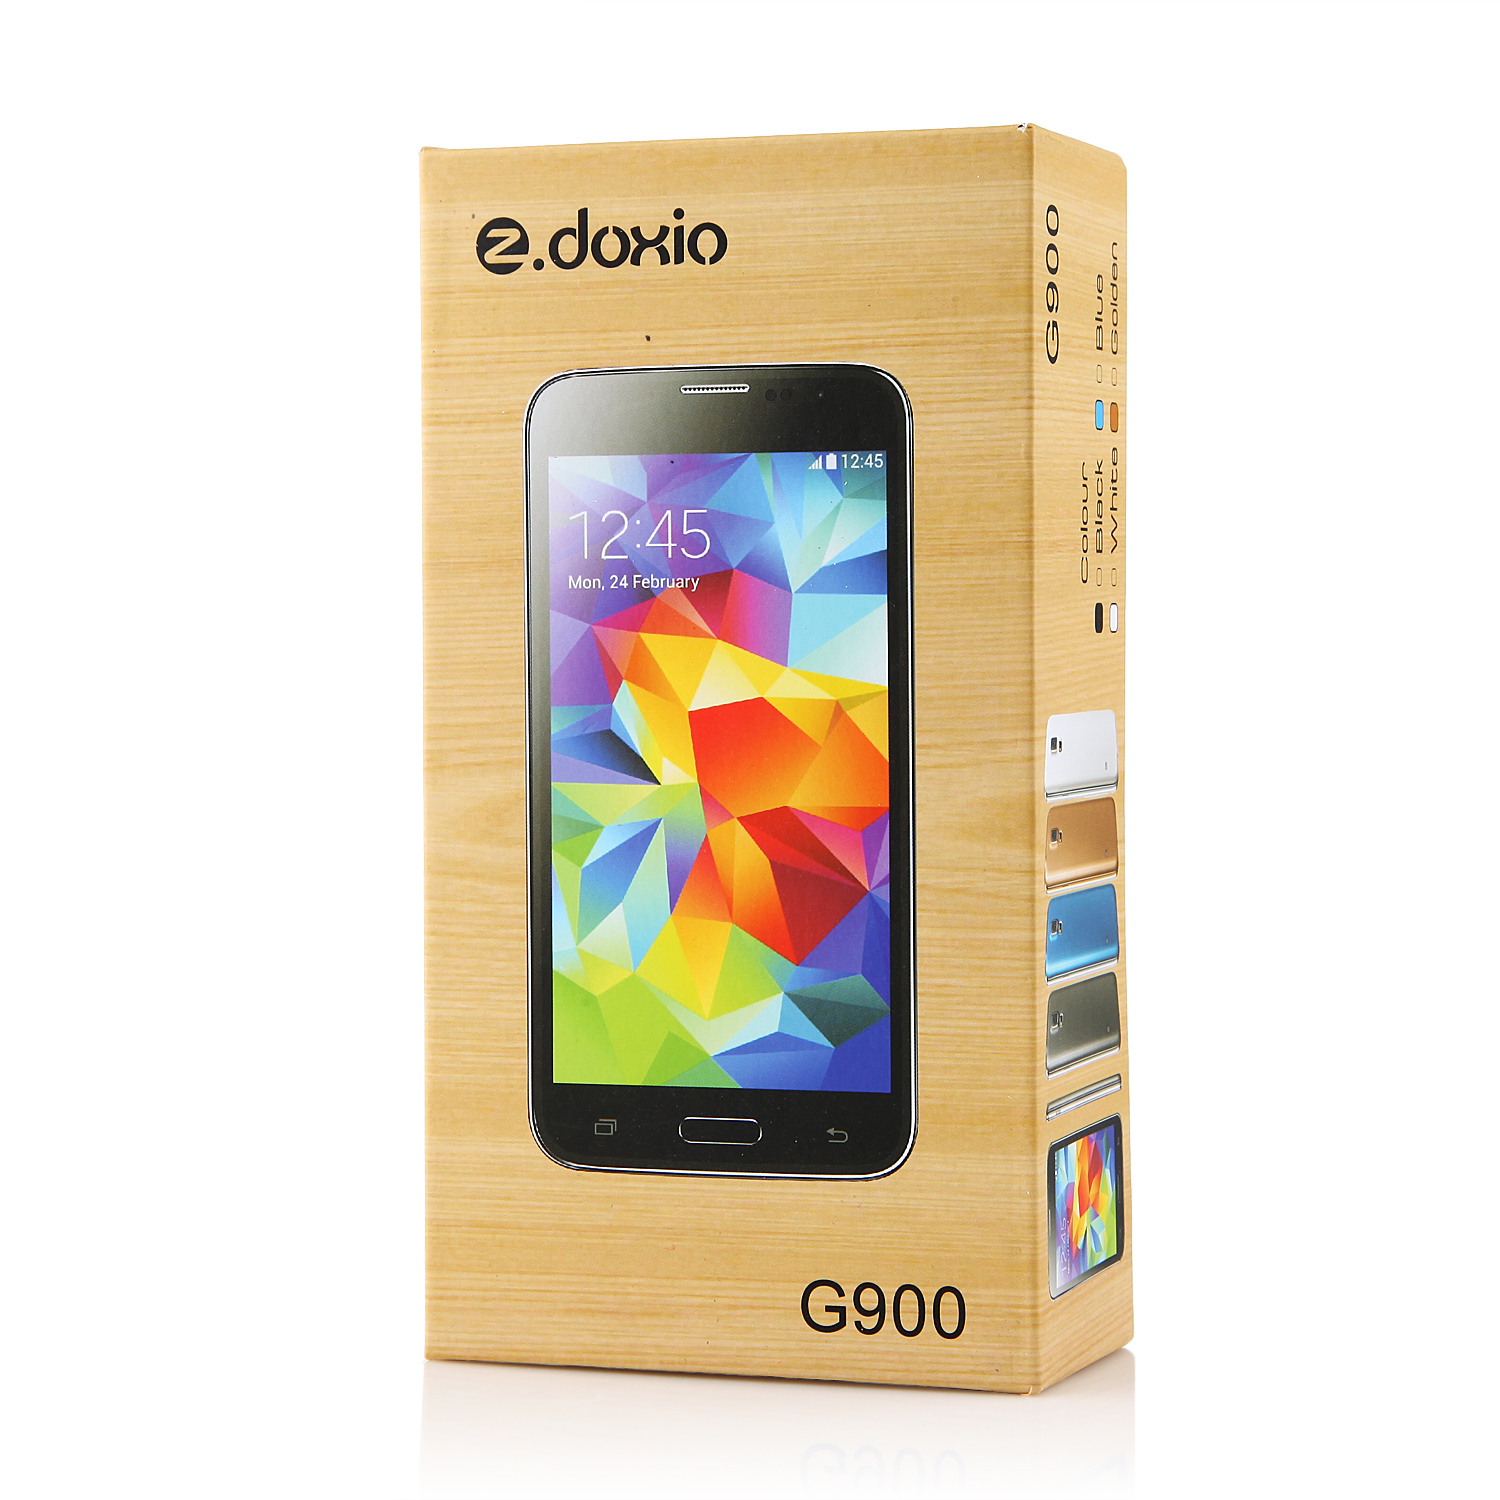 Doxio G900H Smartphone Android 4.2 MTK6572W  5.0 Inch 3G GPS Black